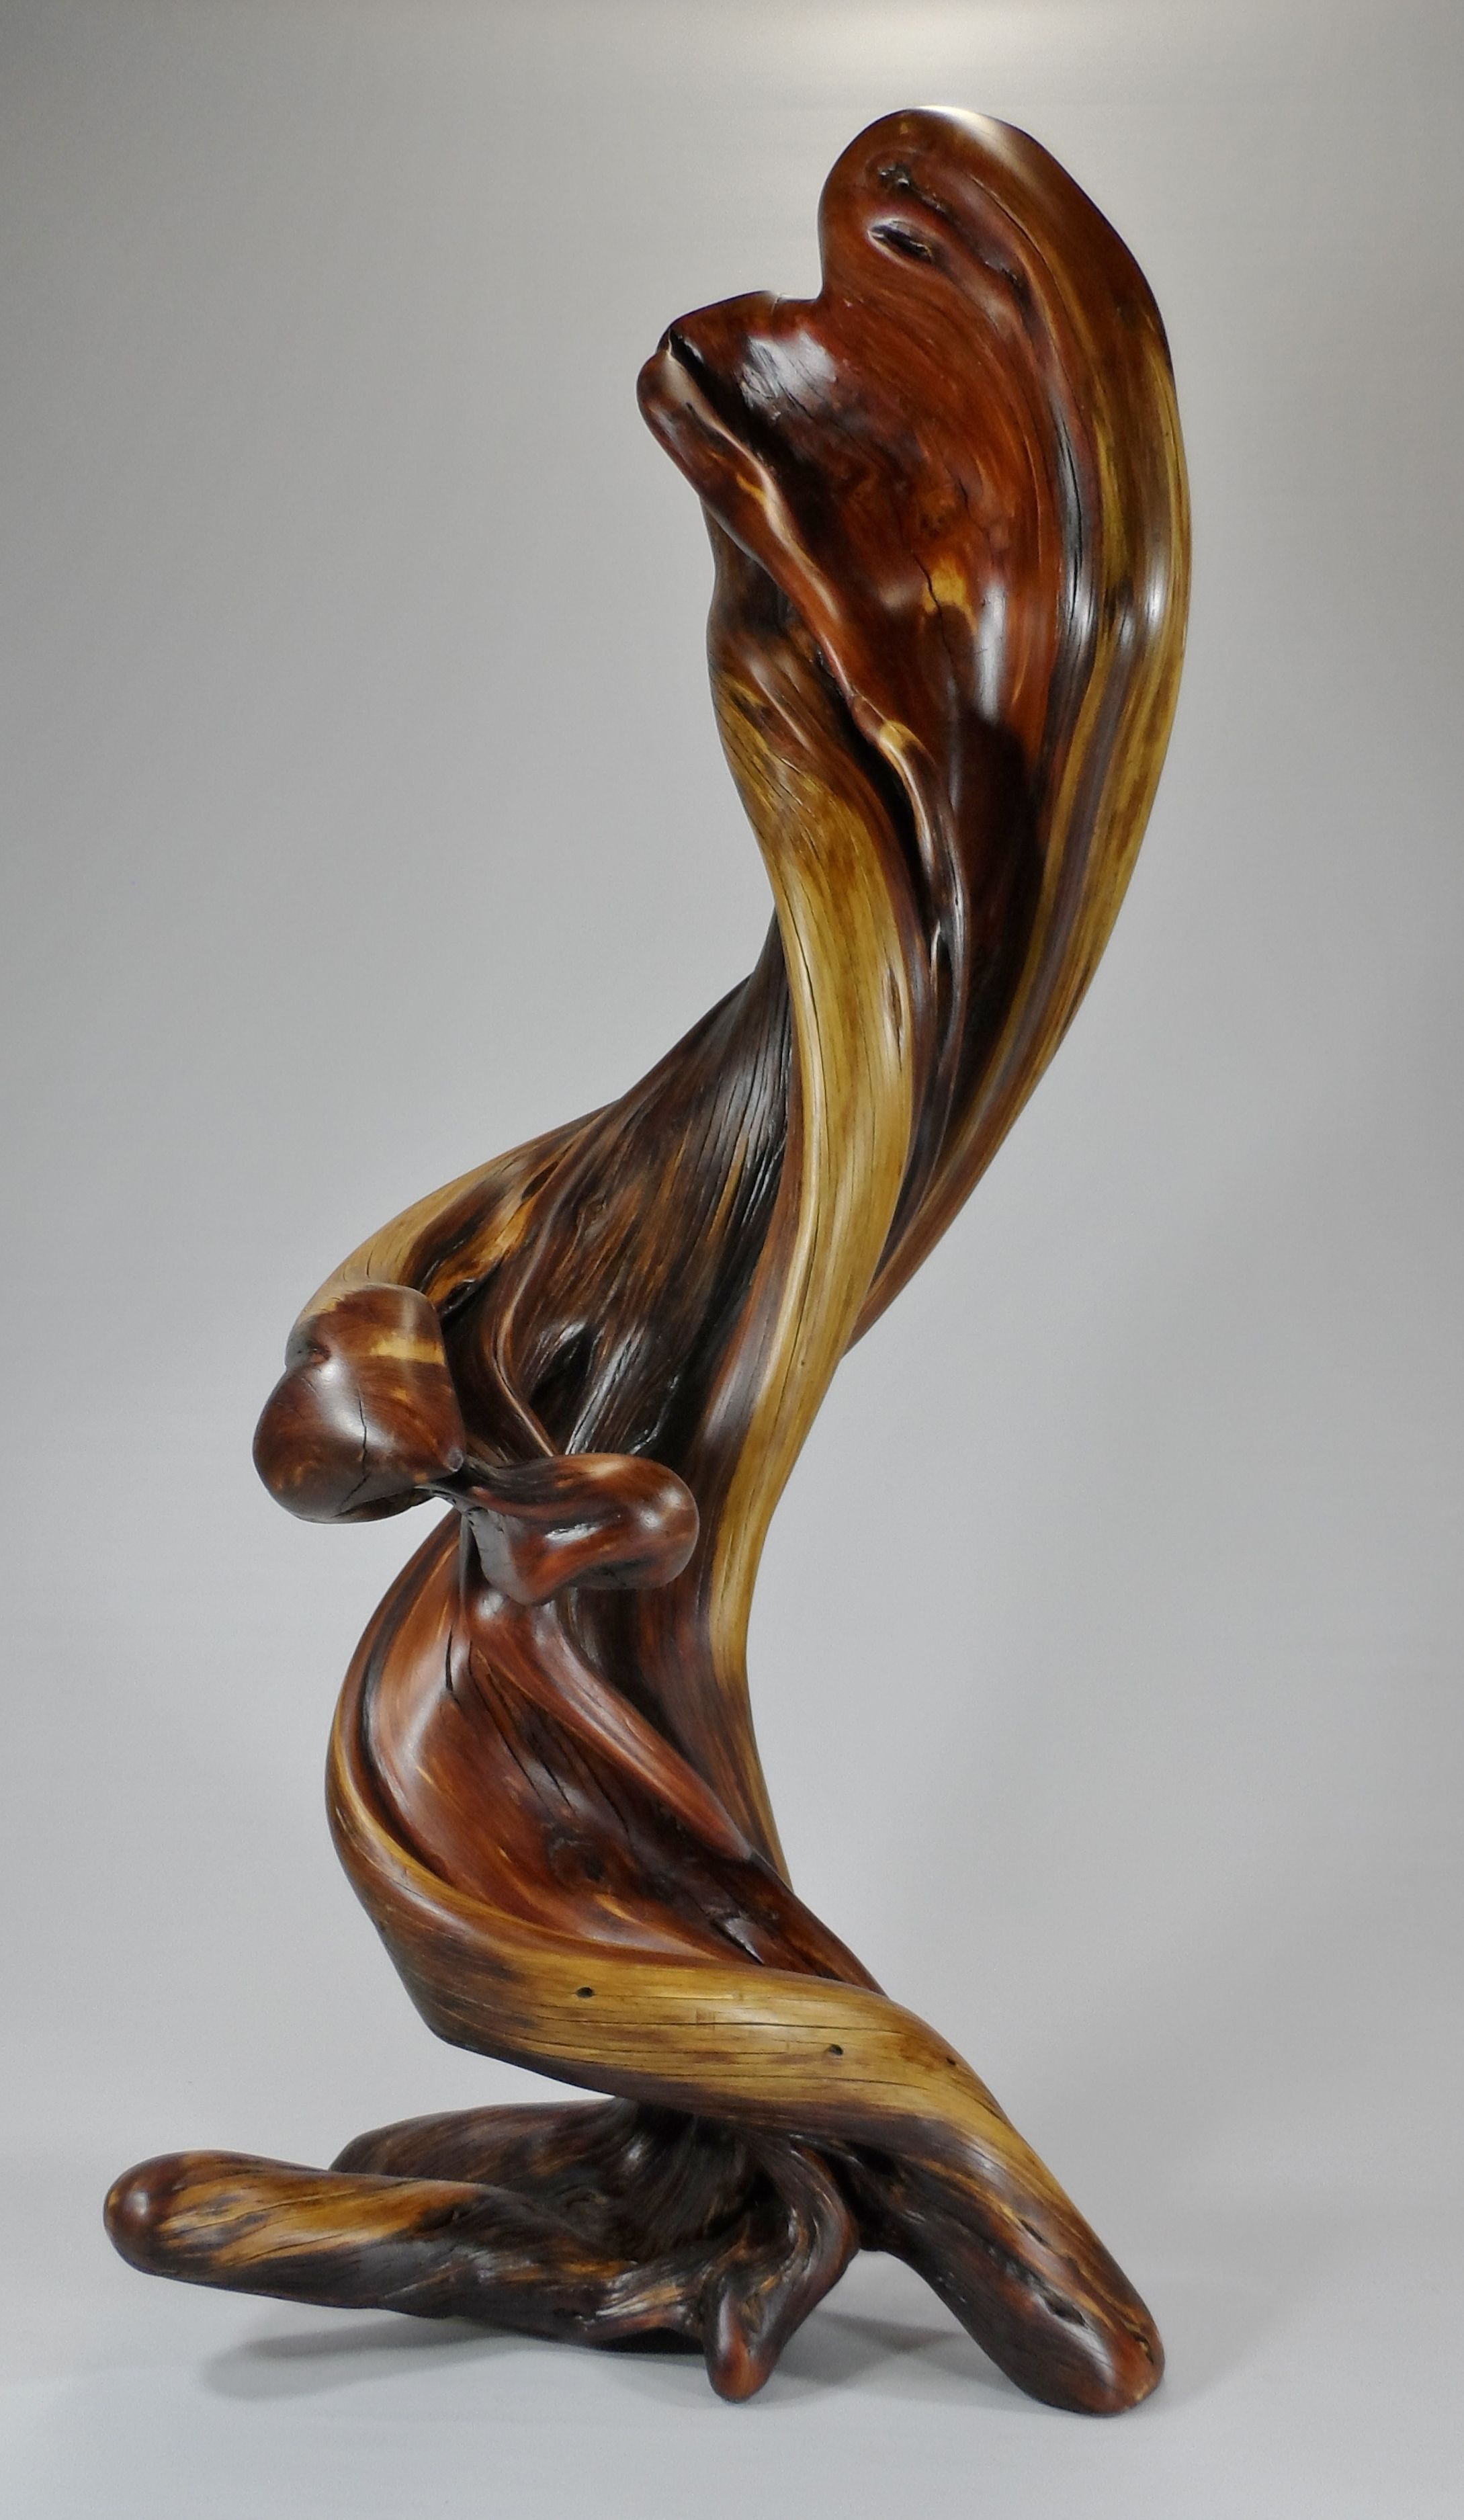 Standing natural wood sculpture art